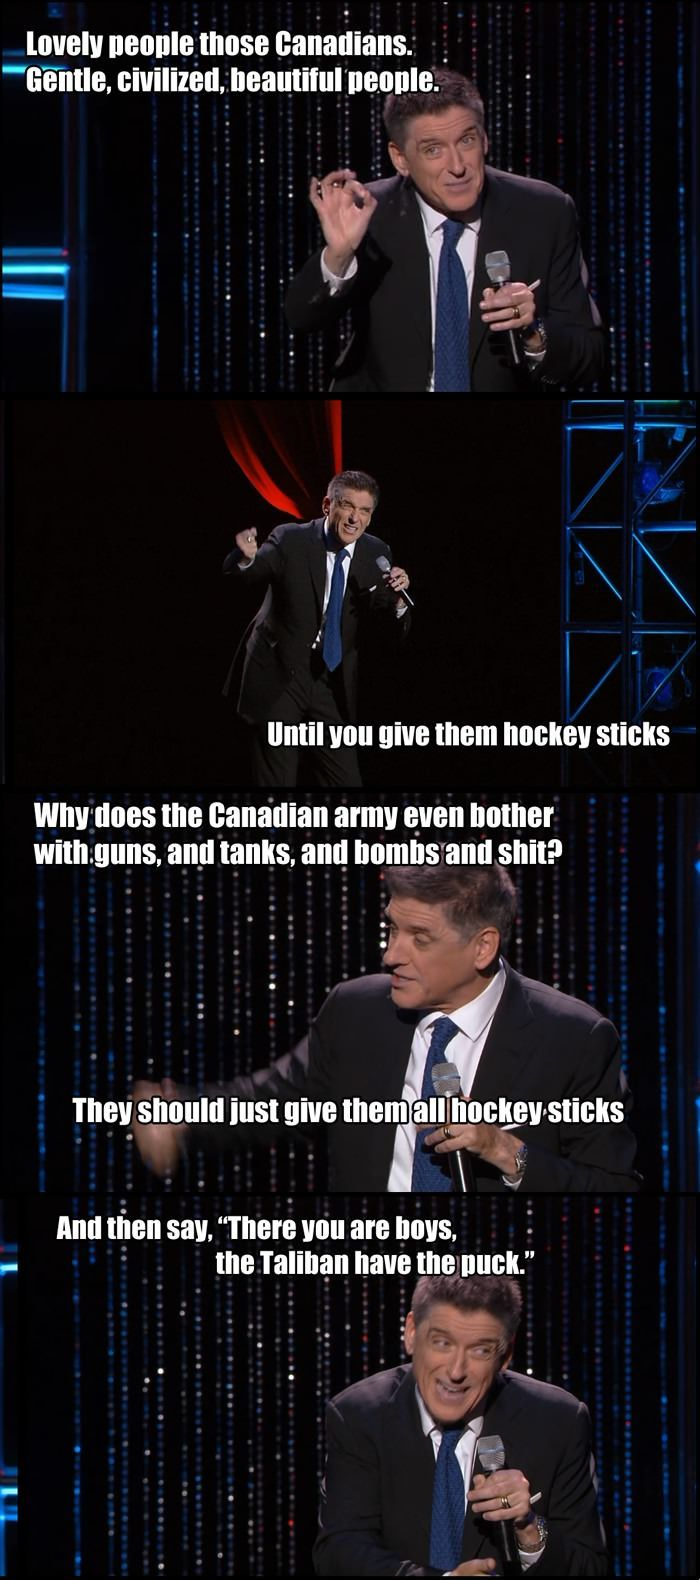 Canadians and Hockey